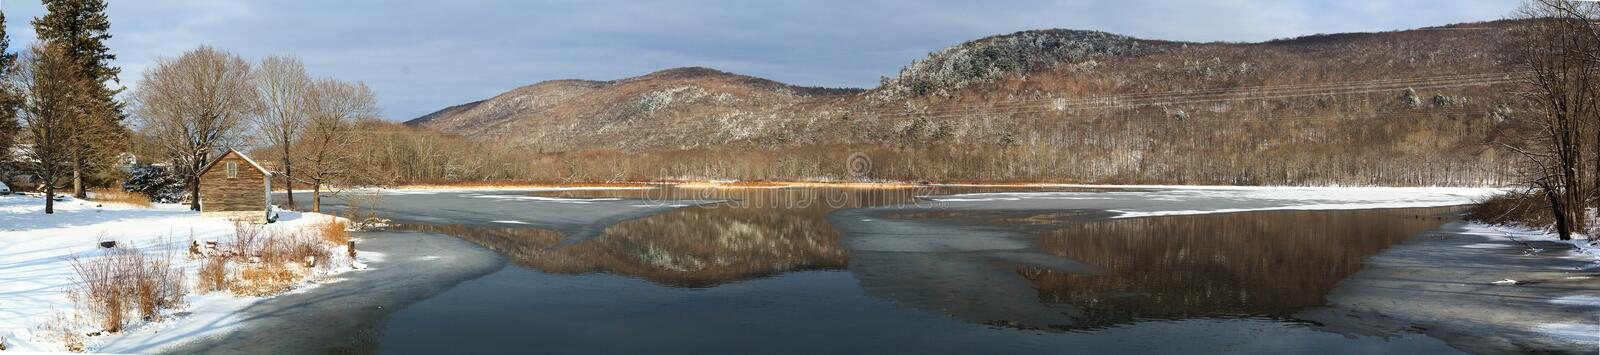 Winter mountain lake scene with cabin in Berkshires stock photography